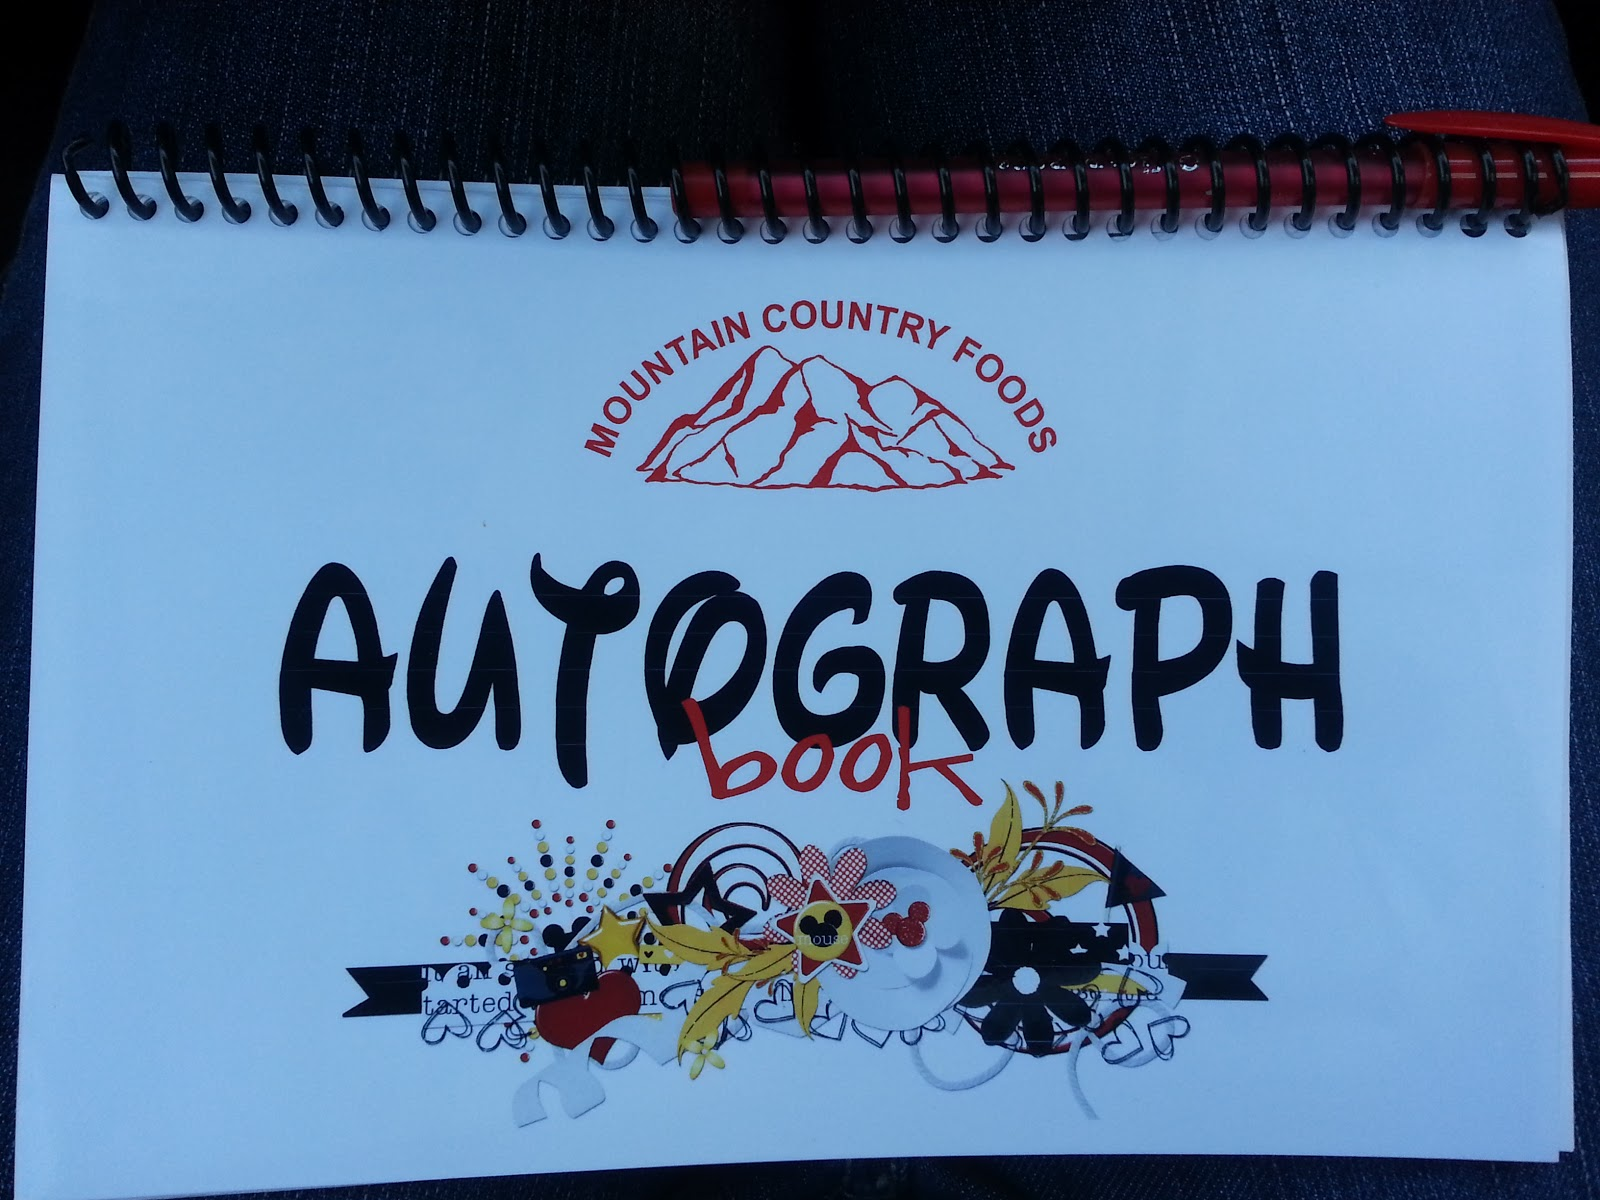 Mountain country foods disneyland autograph books disneyland autograph books each employee will receive 2 autograph books if we have any extra books they will be for sale in the personnel office for 3 publicscrutiny Choice Image